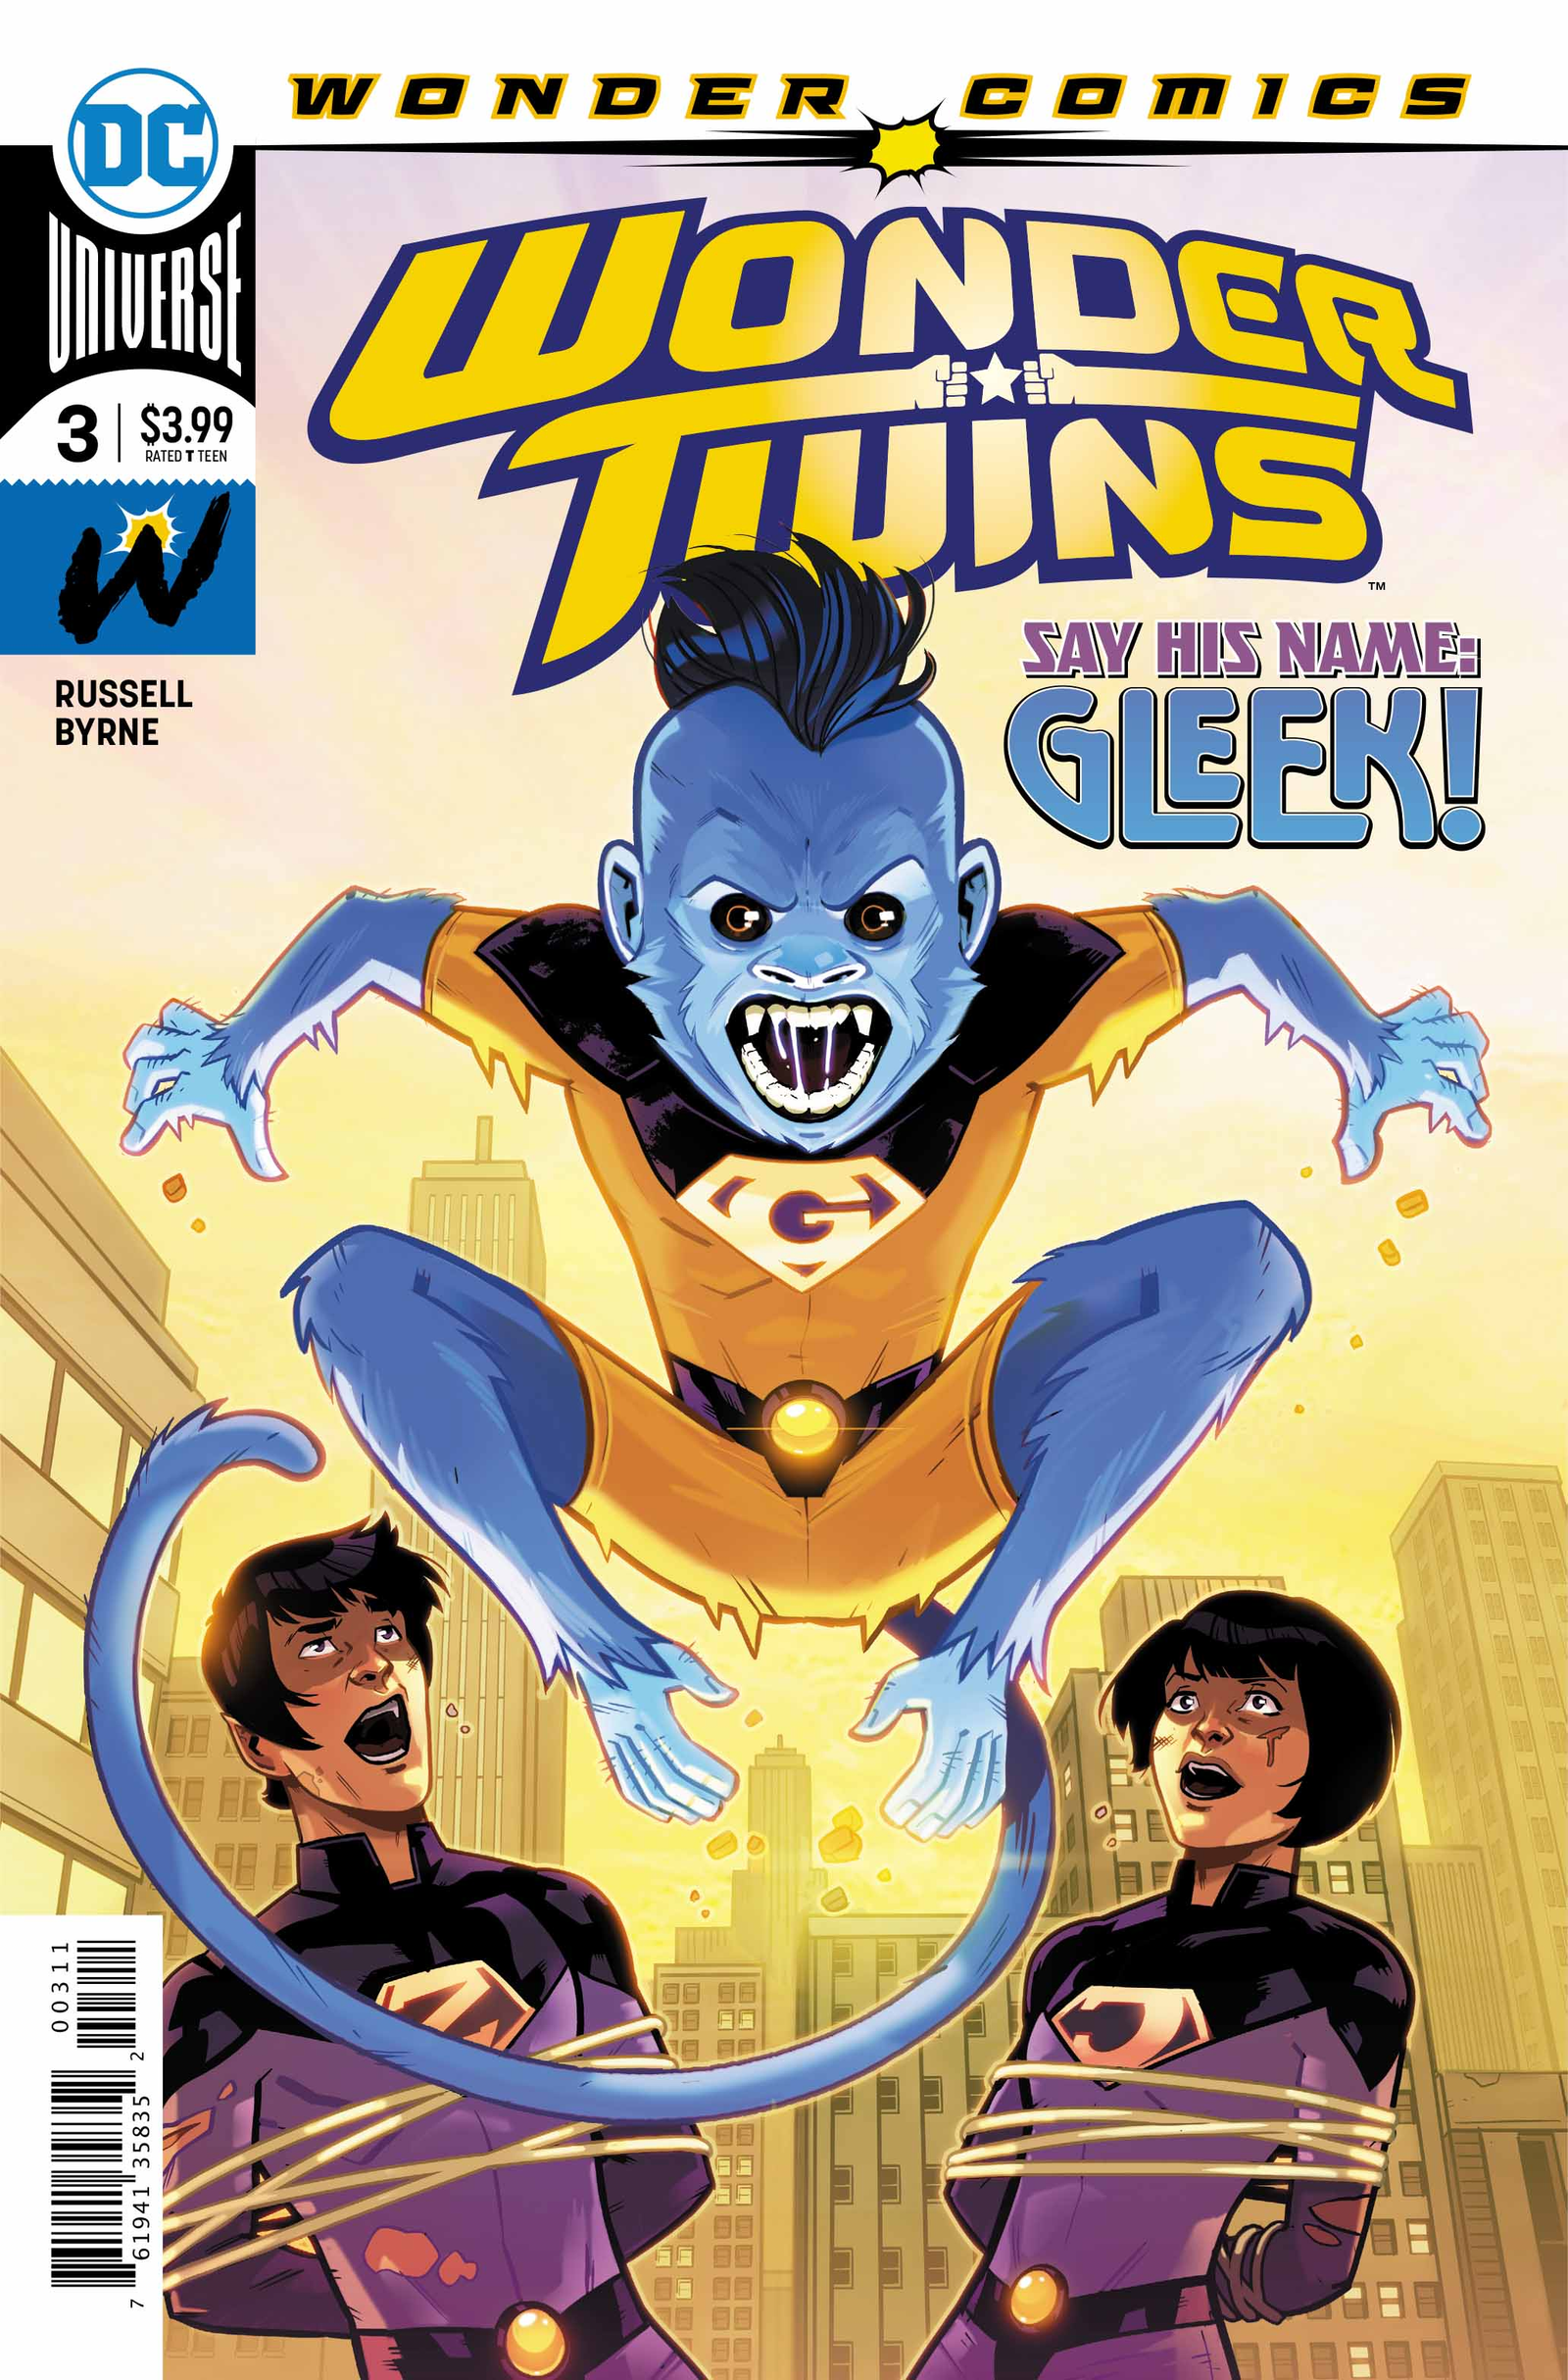 Cover by Stephen Byrne